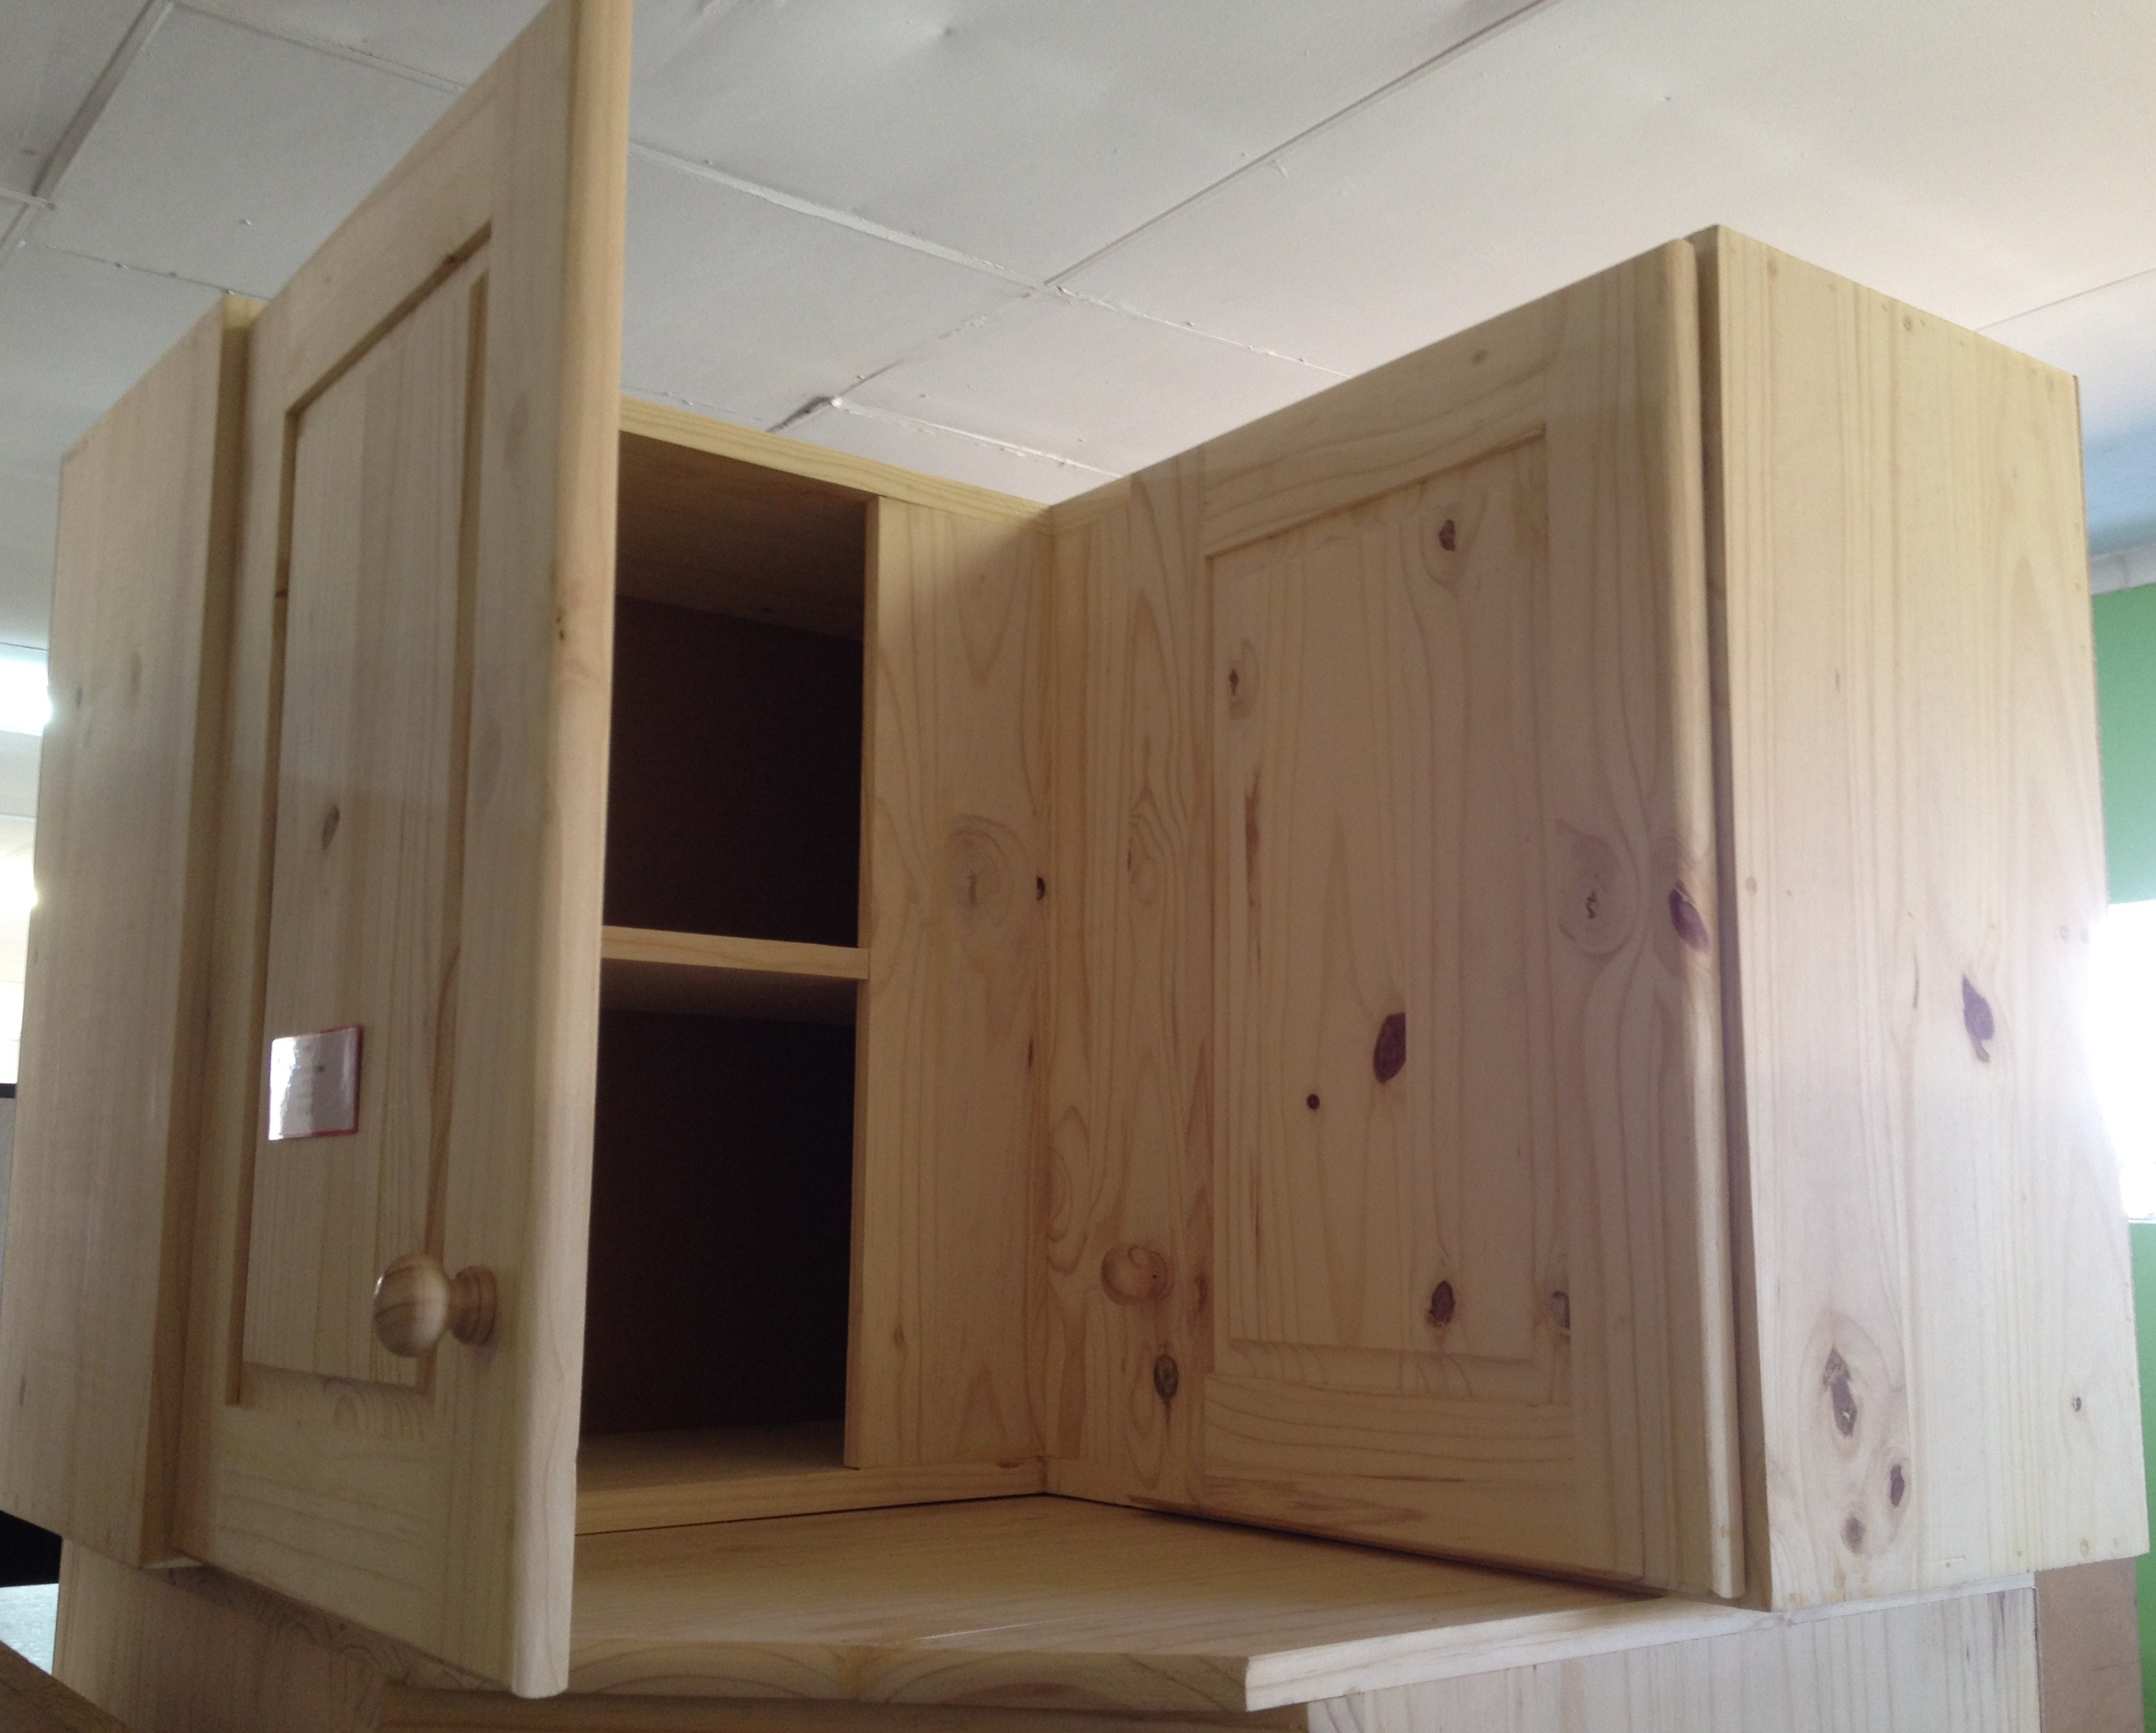 C-Corner Wall Mount Unit